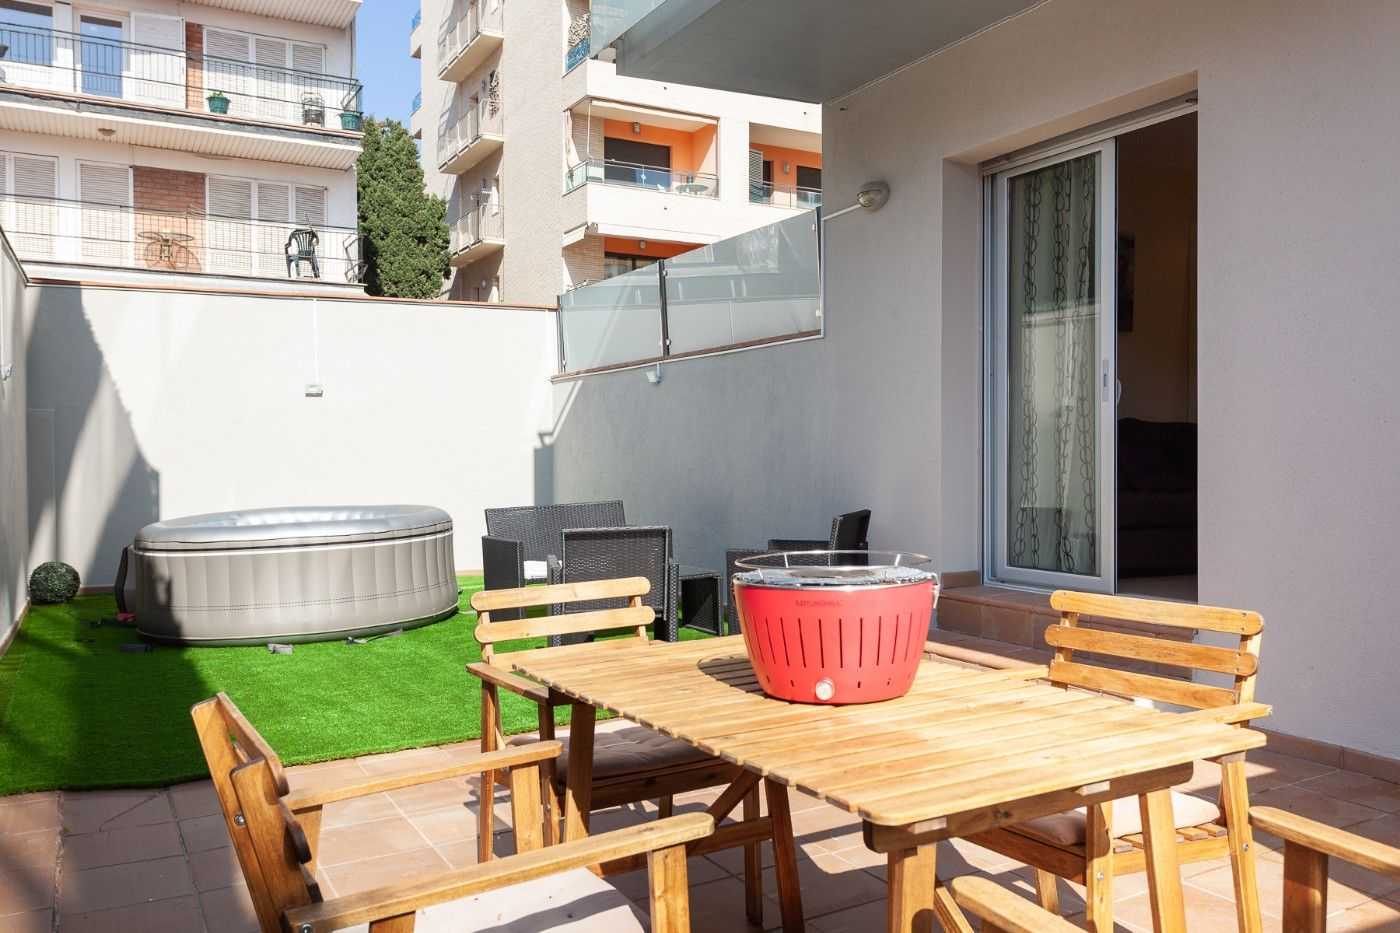 Location saisonnière Appartement à Carrer sant jordi, 7. Sea& beach family apartments